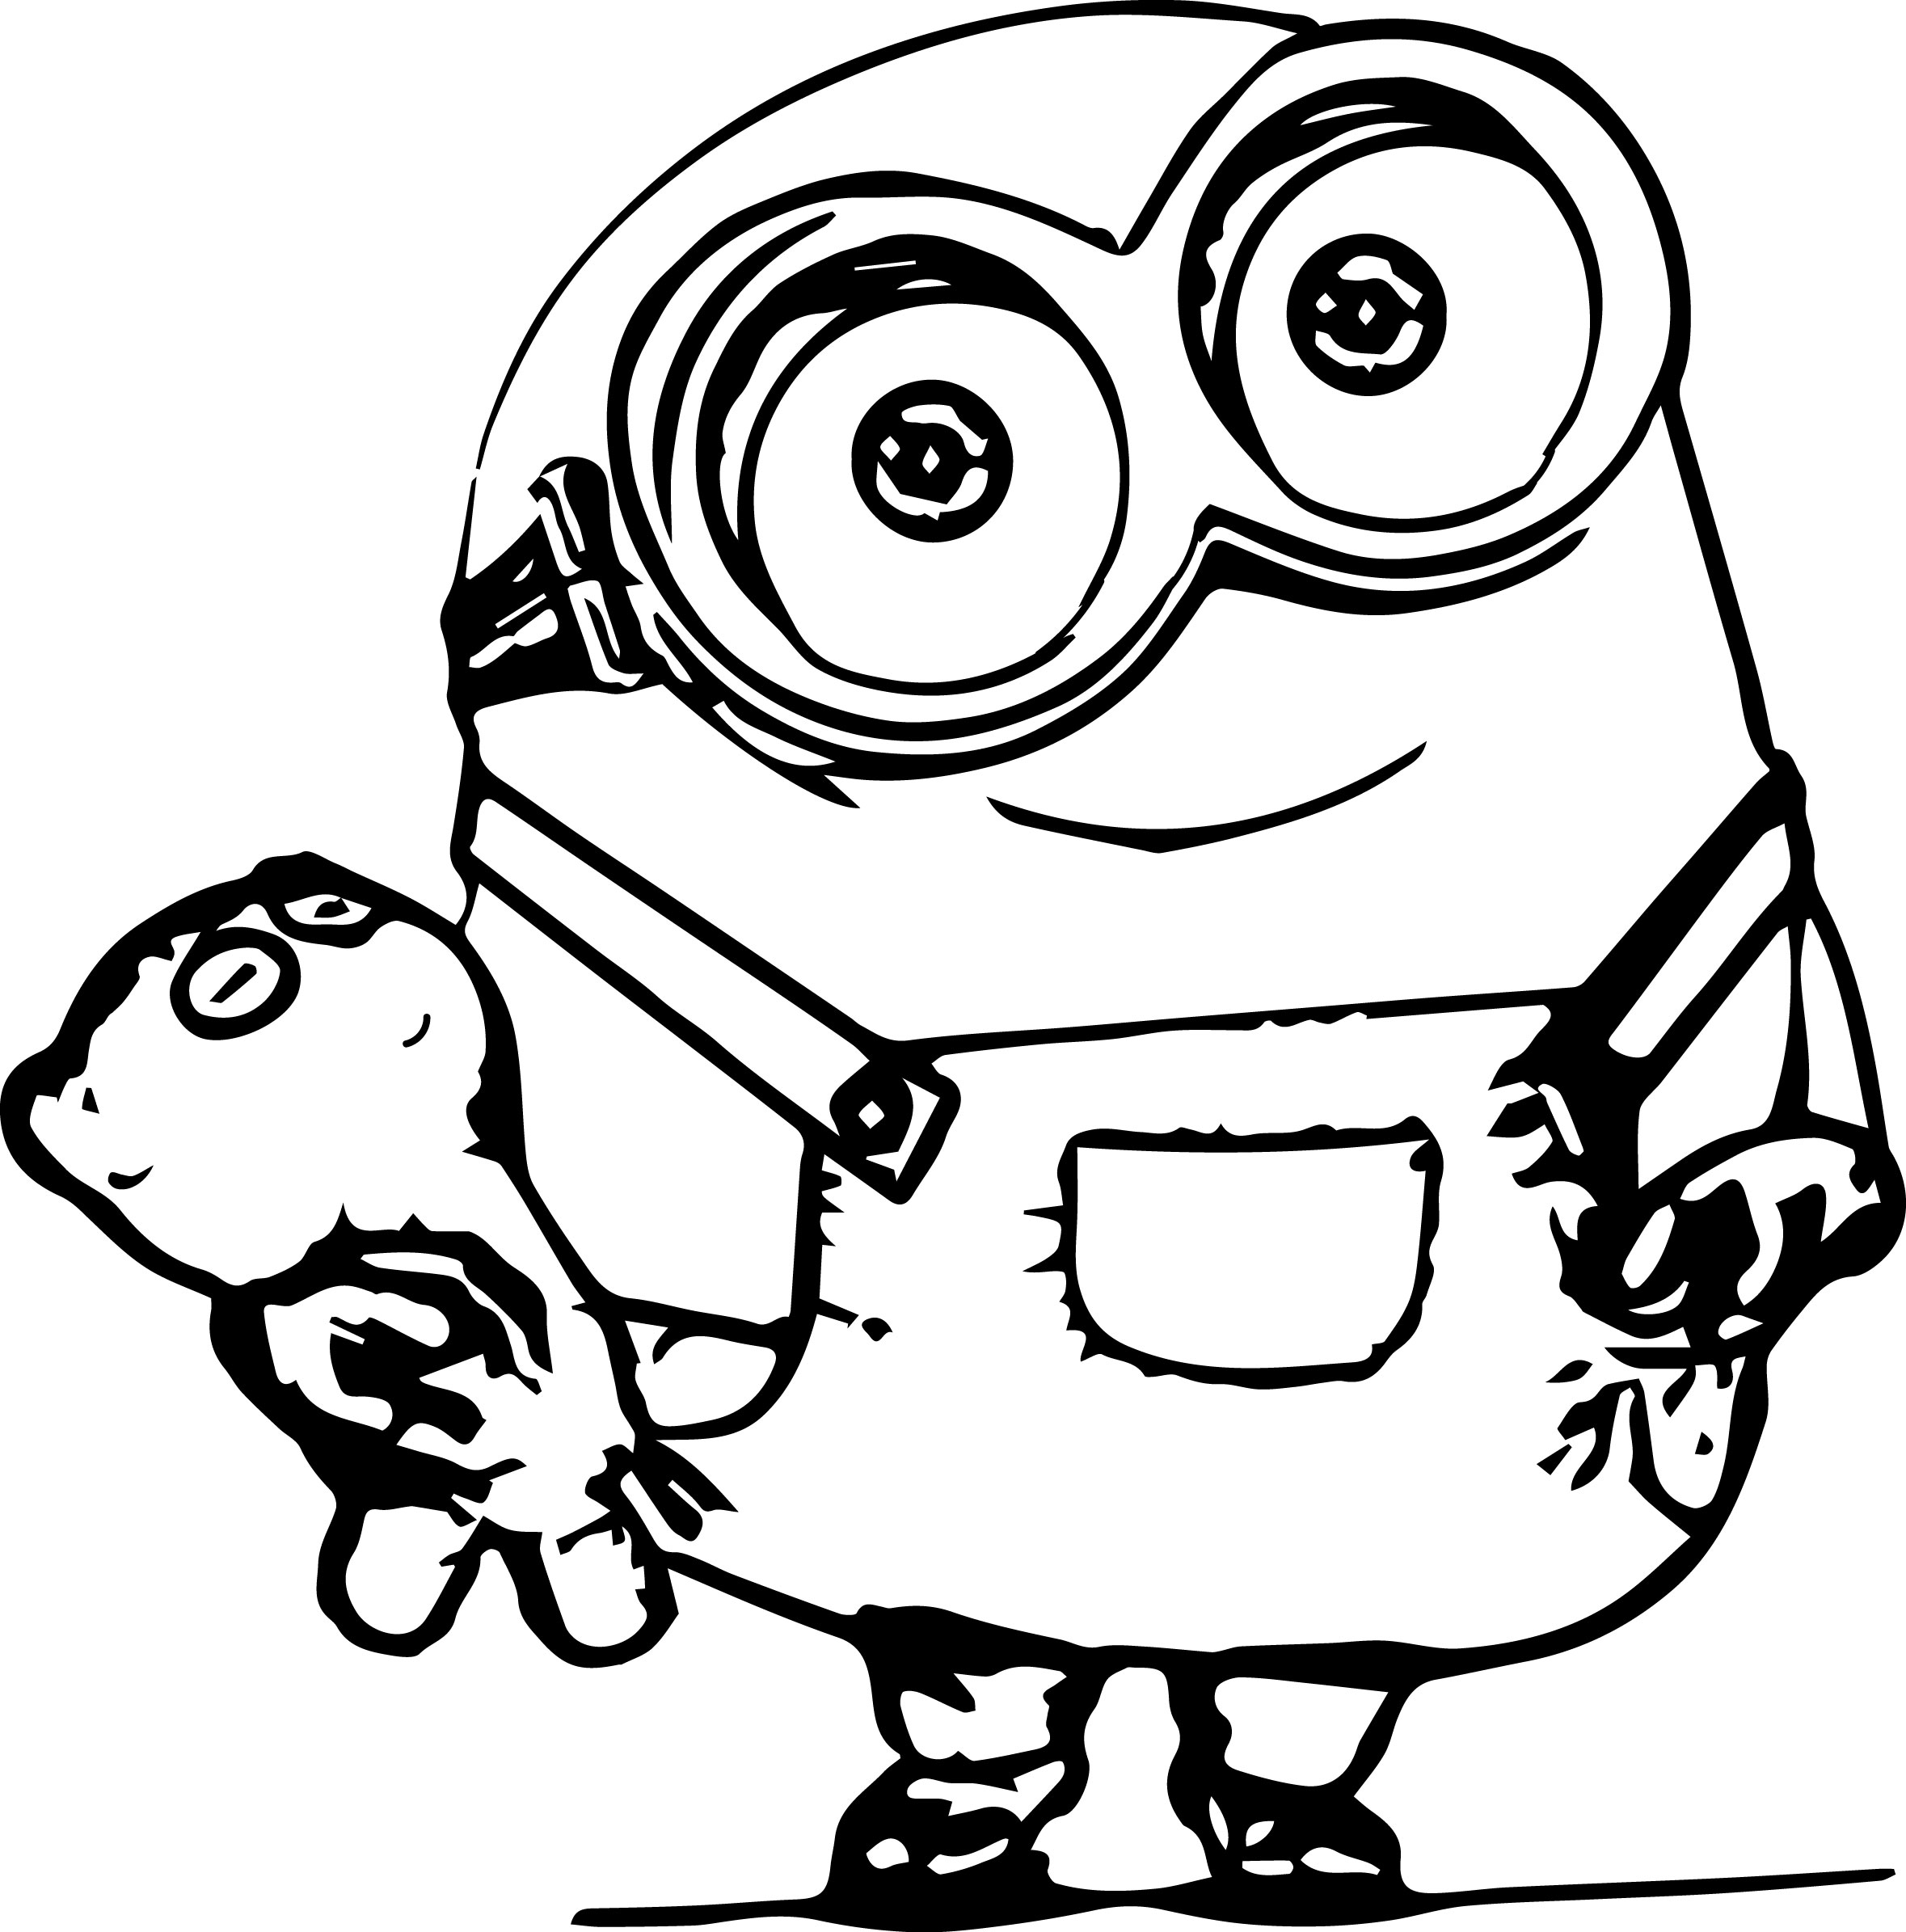 minions print print download minion coloring pages for kids to have minions print